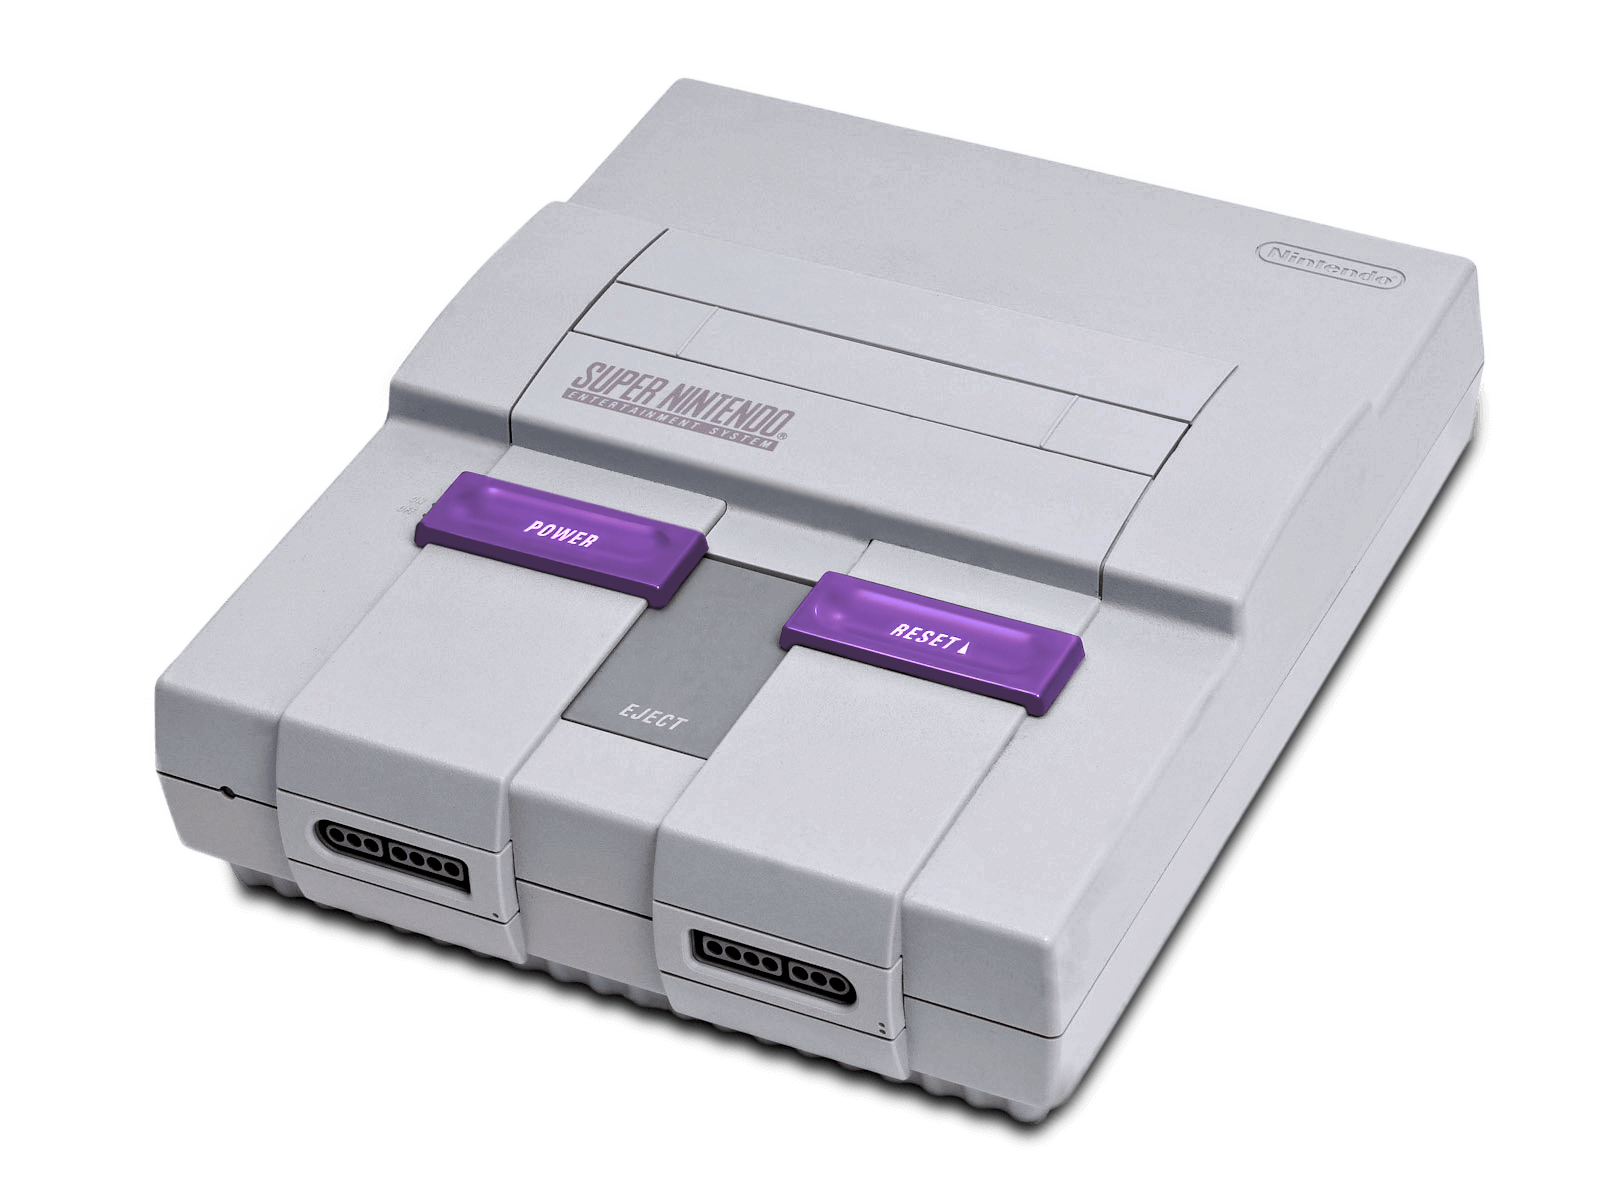 The super nintendo co ltd adr otcmkts ntdoy console is now 25 years old gazette review - Super nintendo classic game console ...